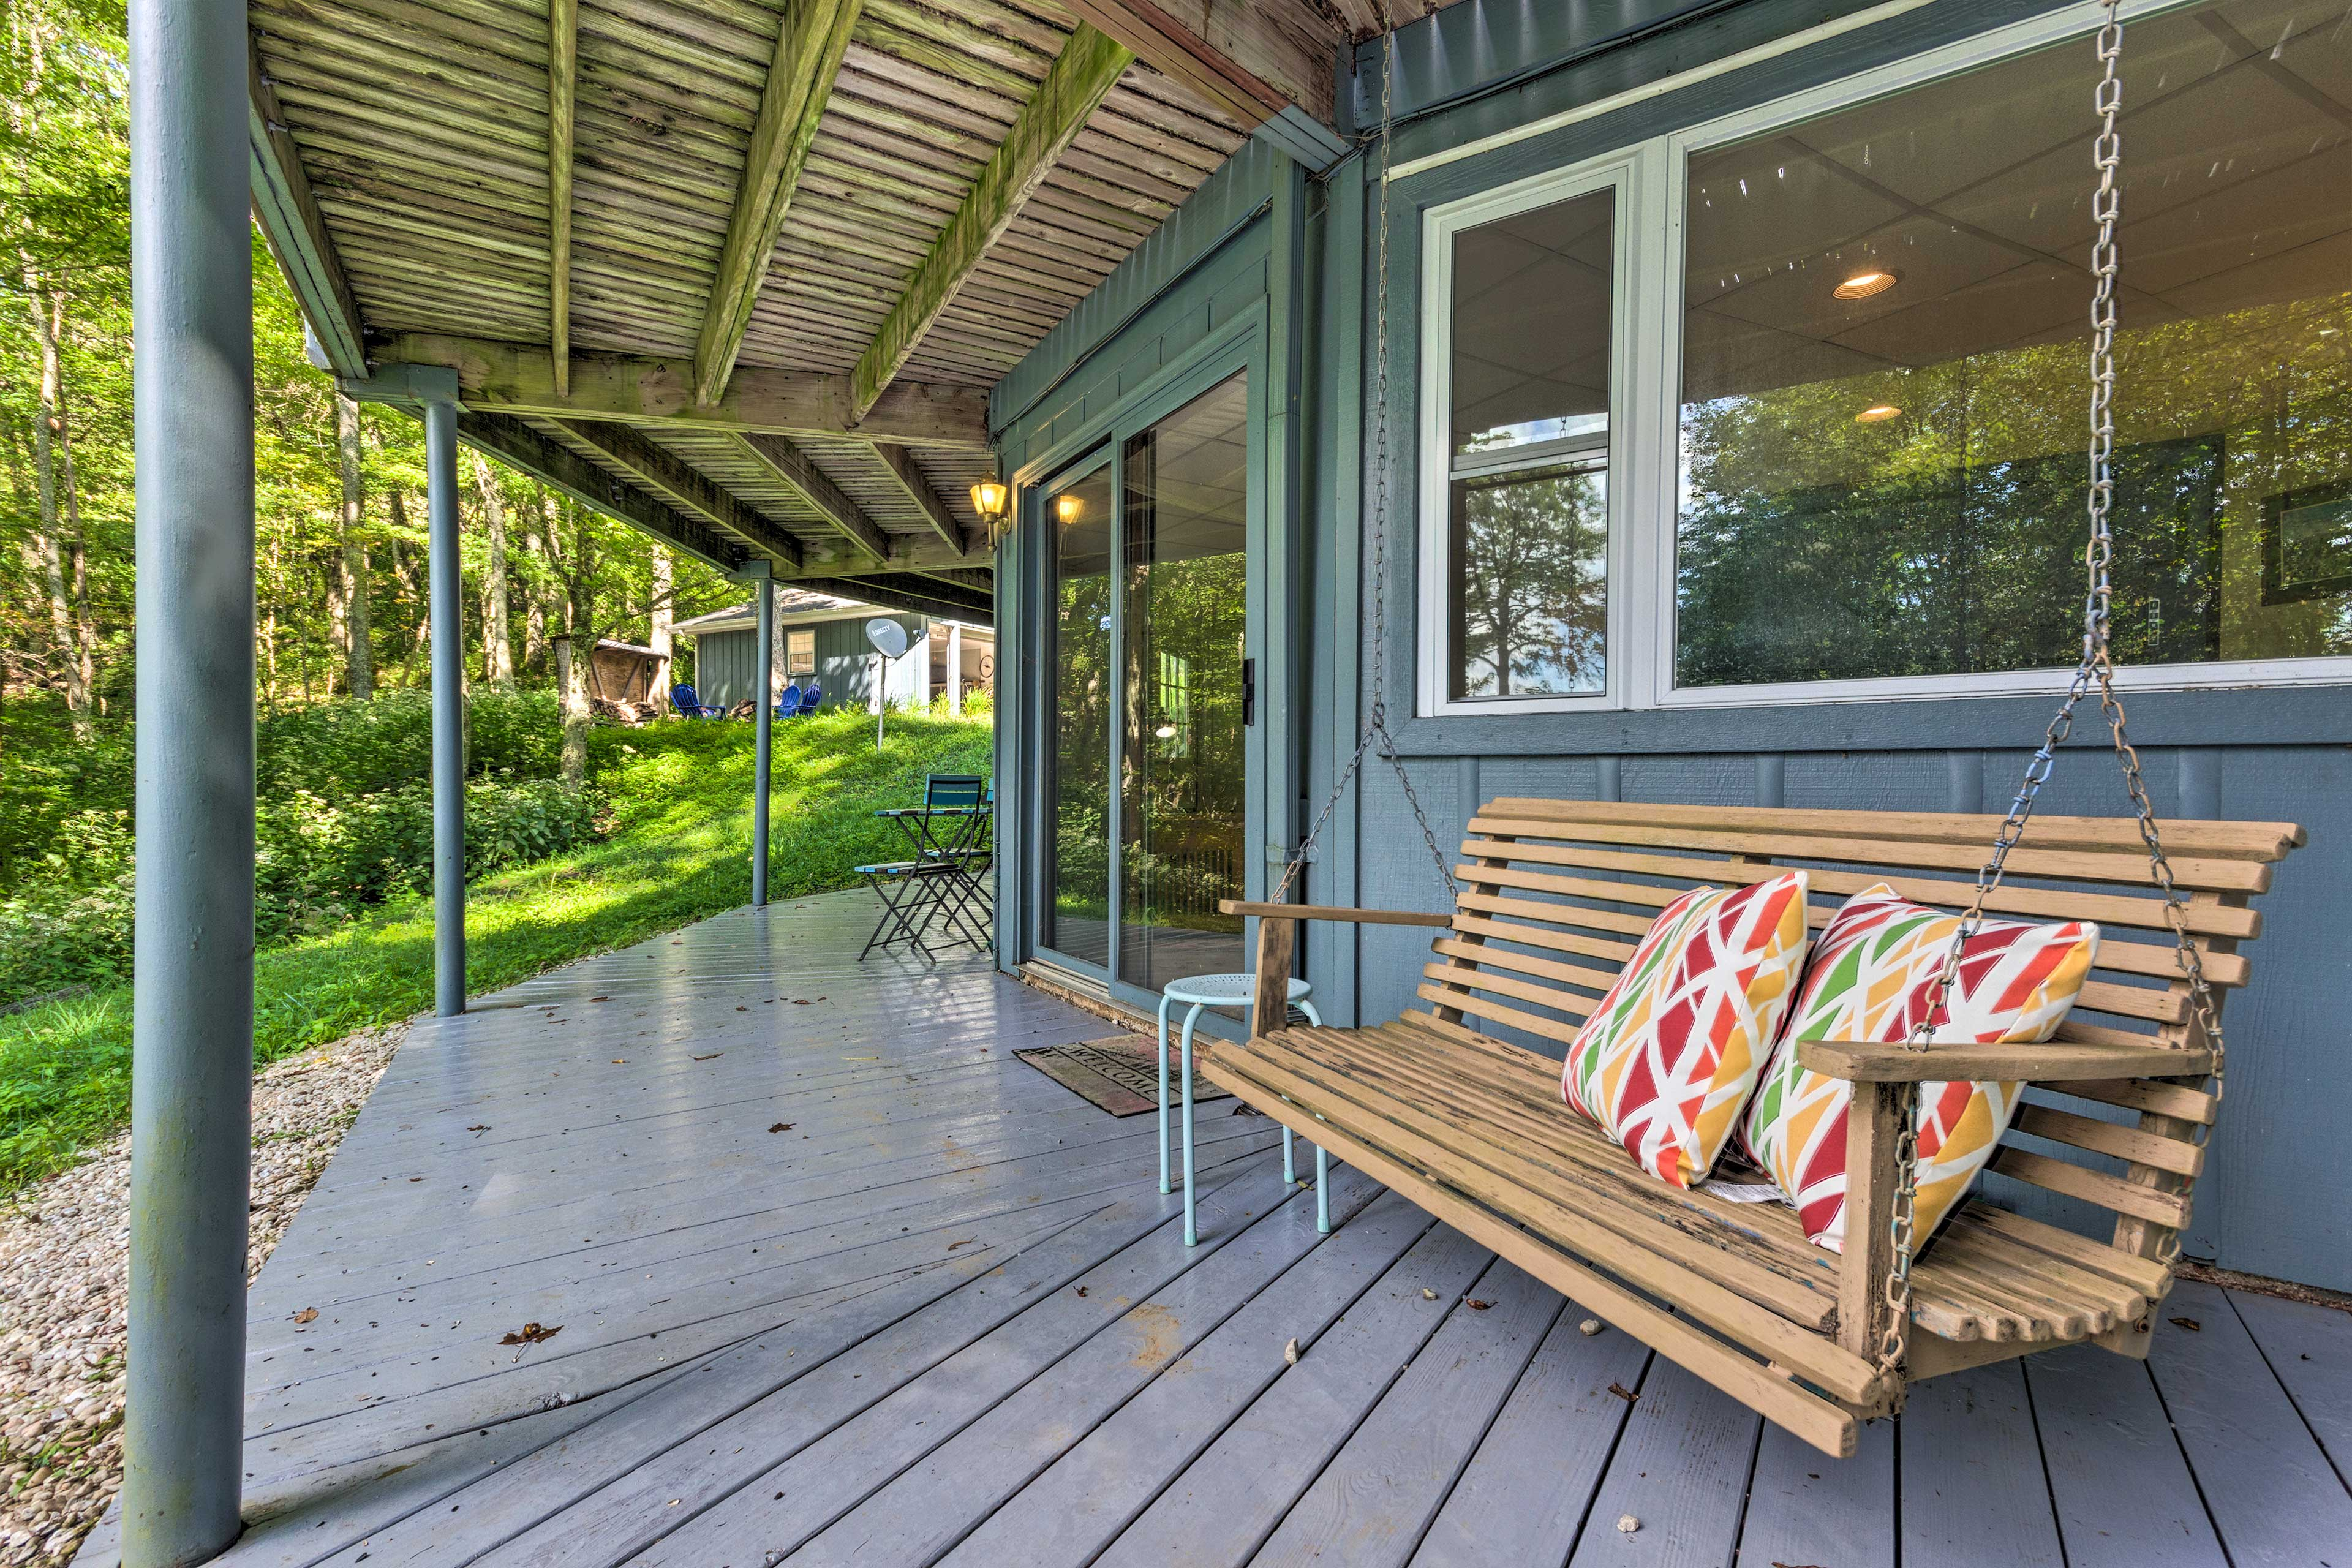 If you can't sit still, come to the lower porch to swing.